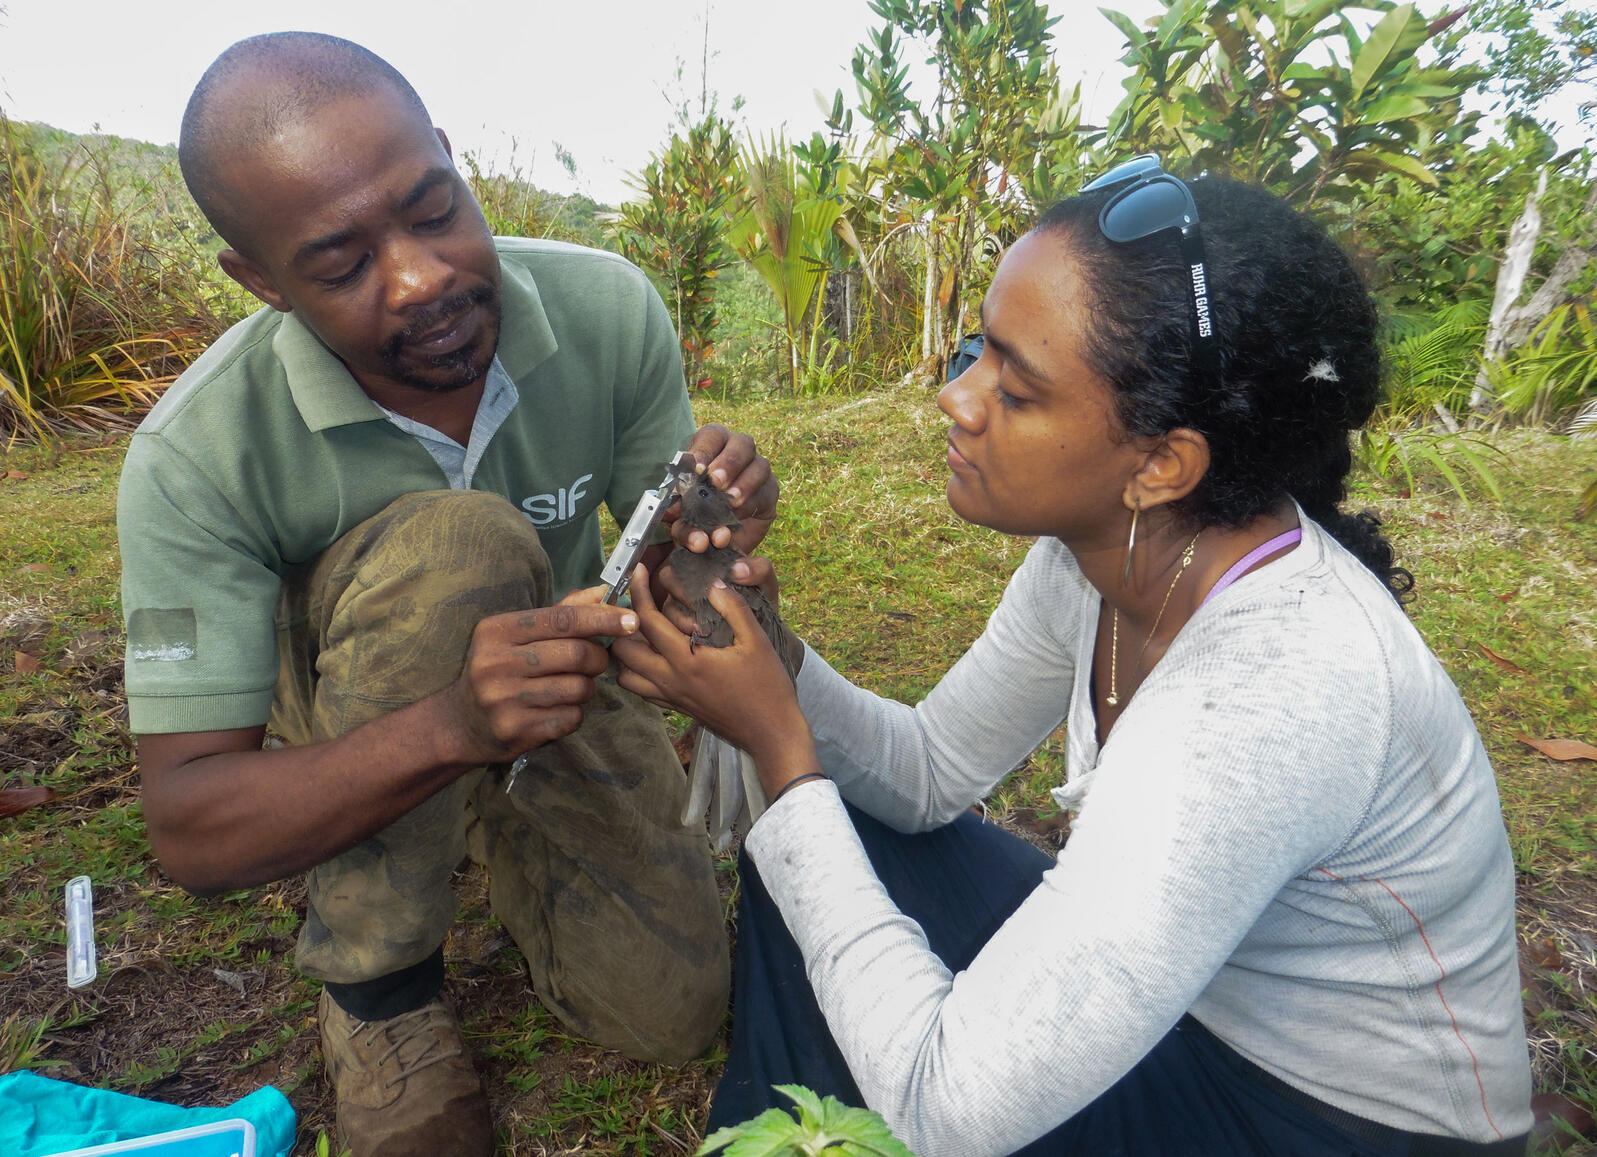 Vero Couttee, right, working as a project officer with the Seychelles Islands Foundation, bands a Black Parrot with colleague Terence Mahoune on the island of Praslin, Seychelles  in 2017. Courtesy of Vero Couttee